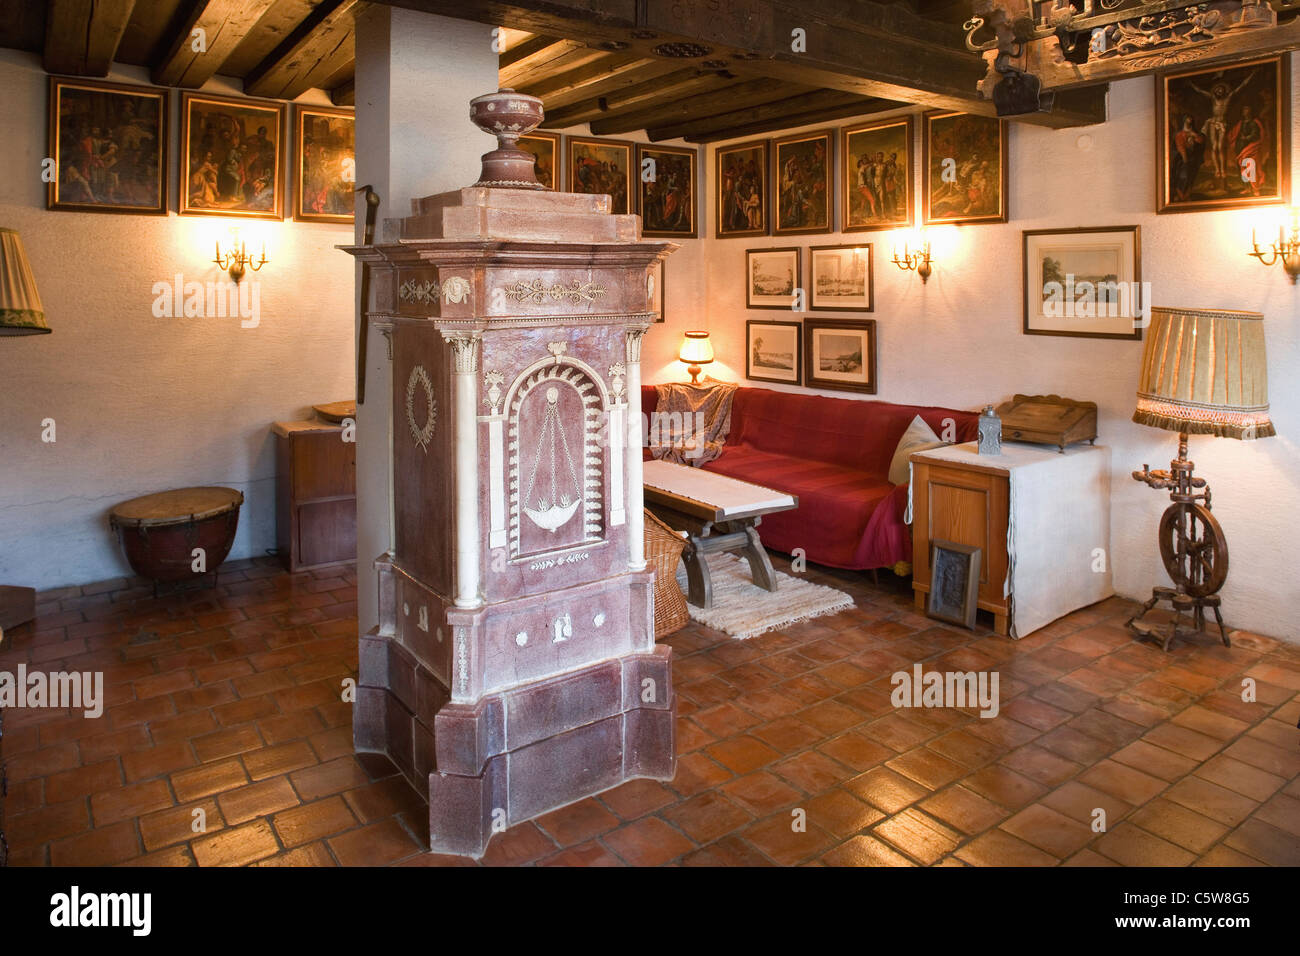 Austria, Lower Austria, Historic room with tiled stove - Stock Image